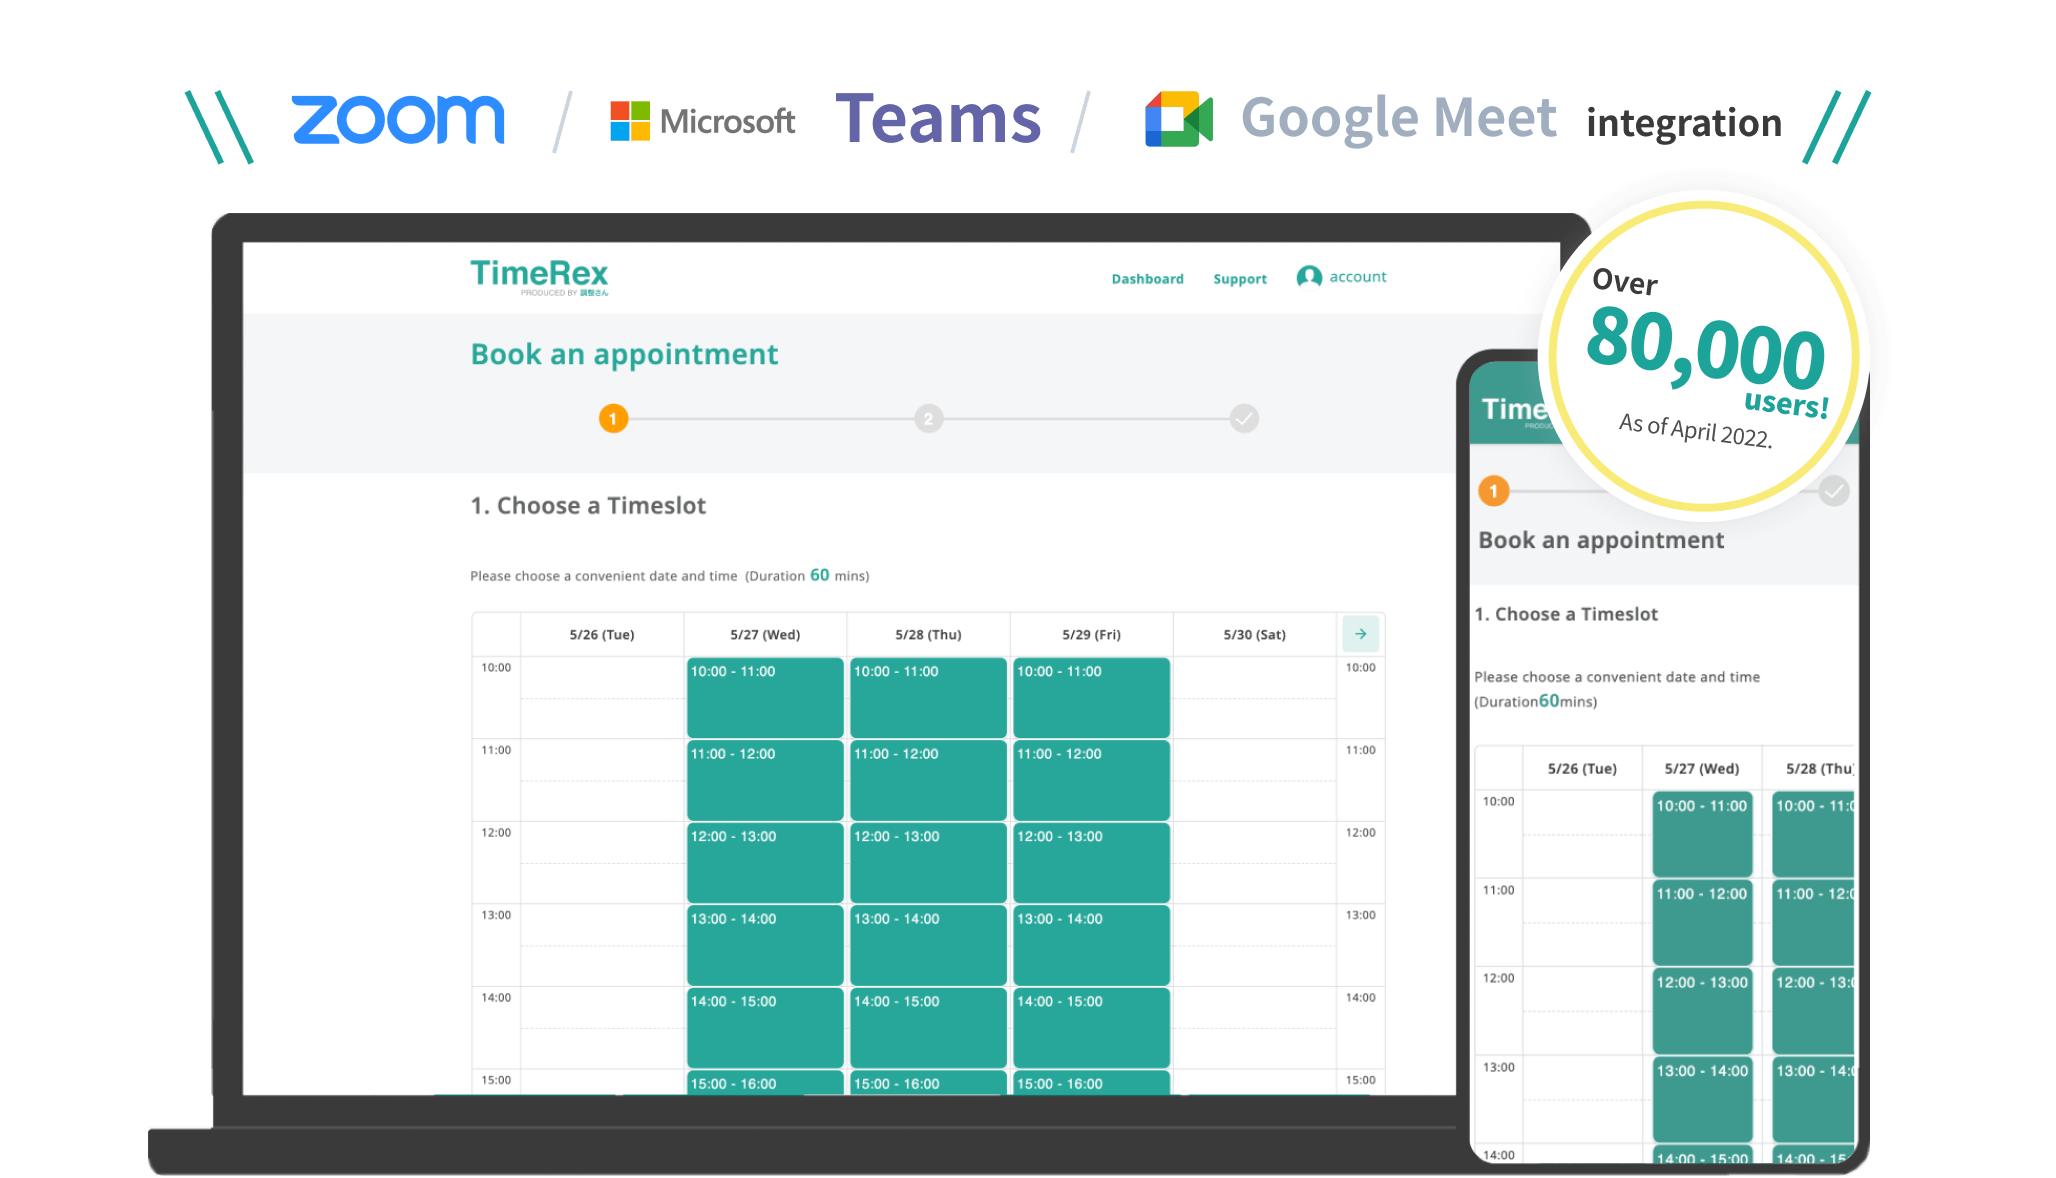 Image of TimeRex's calendar page